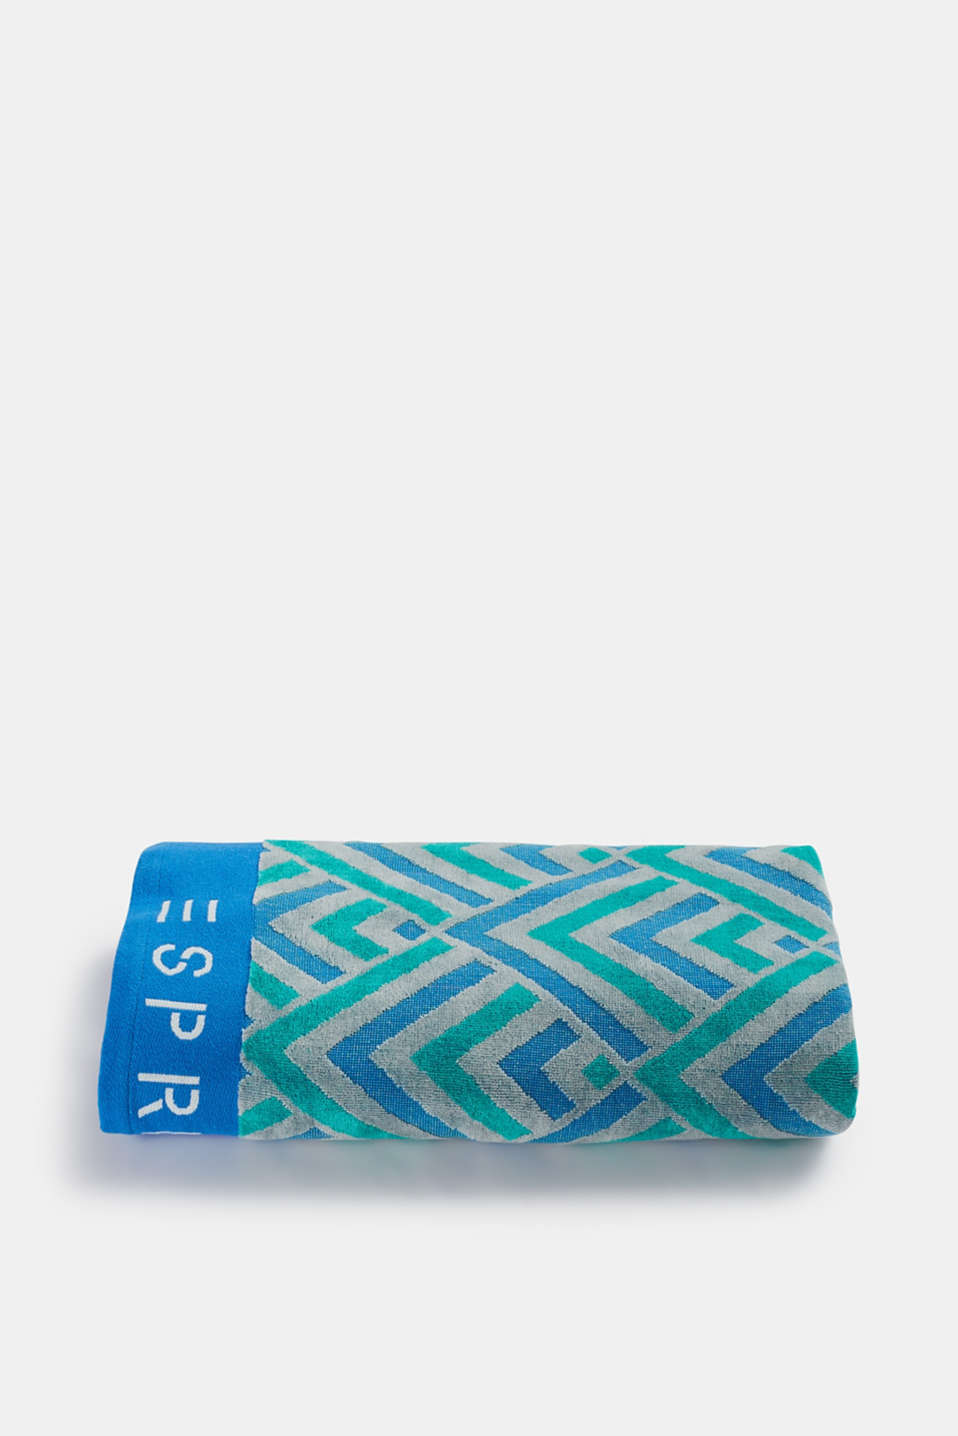 Esprit - Cotton beach towel with a zigzag pattern